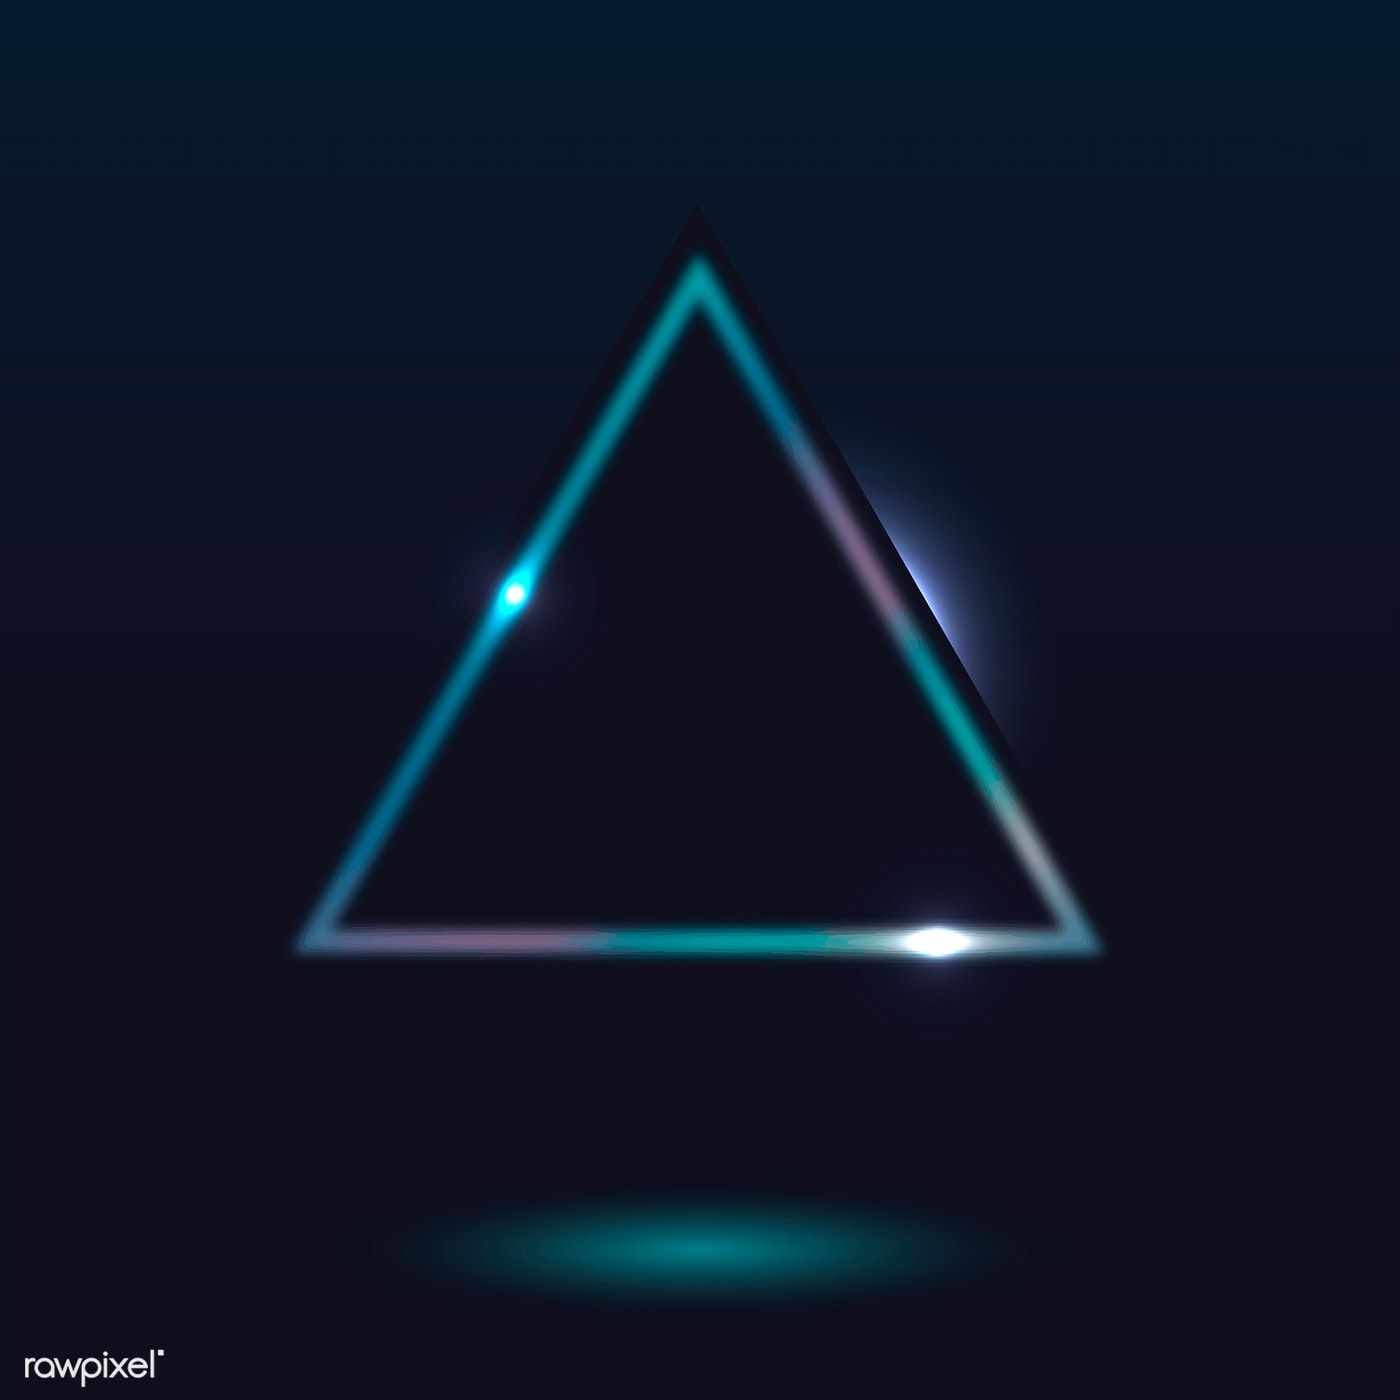 Retro Neon Triangle Badge Vector Free Image By Rawpixel Com Ningzk V Taus Neon Vector Free Neon Backgrounds